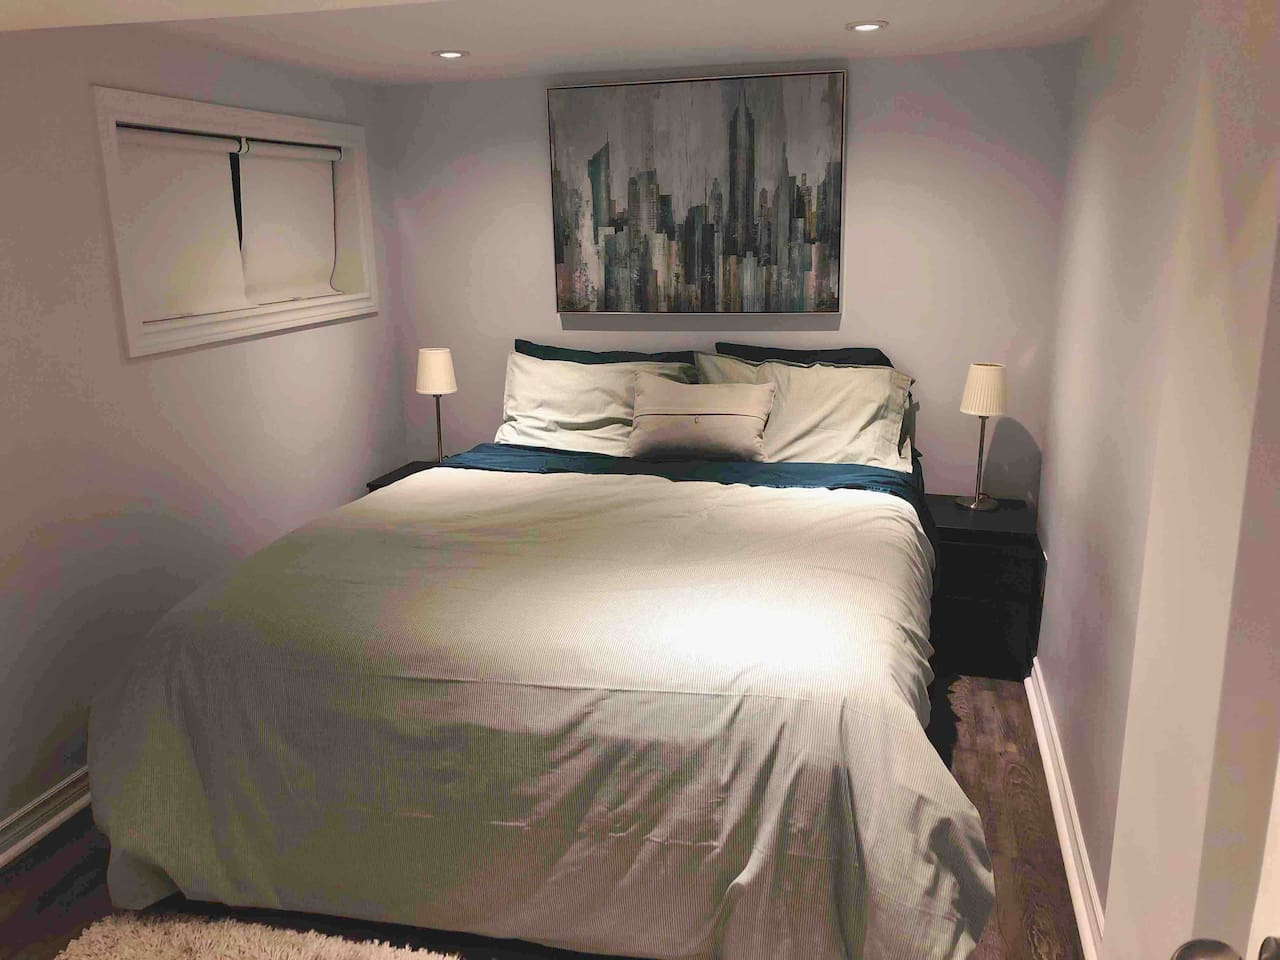 Bedroom with queen size bed and drawers